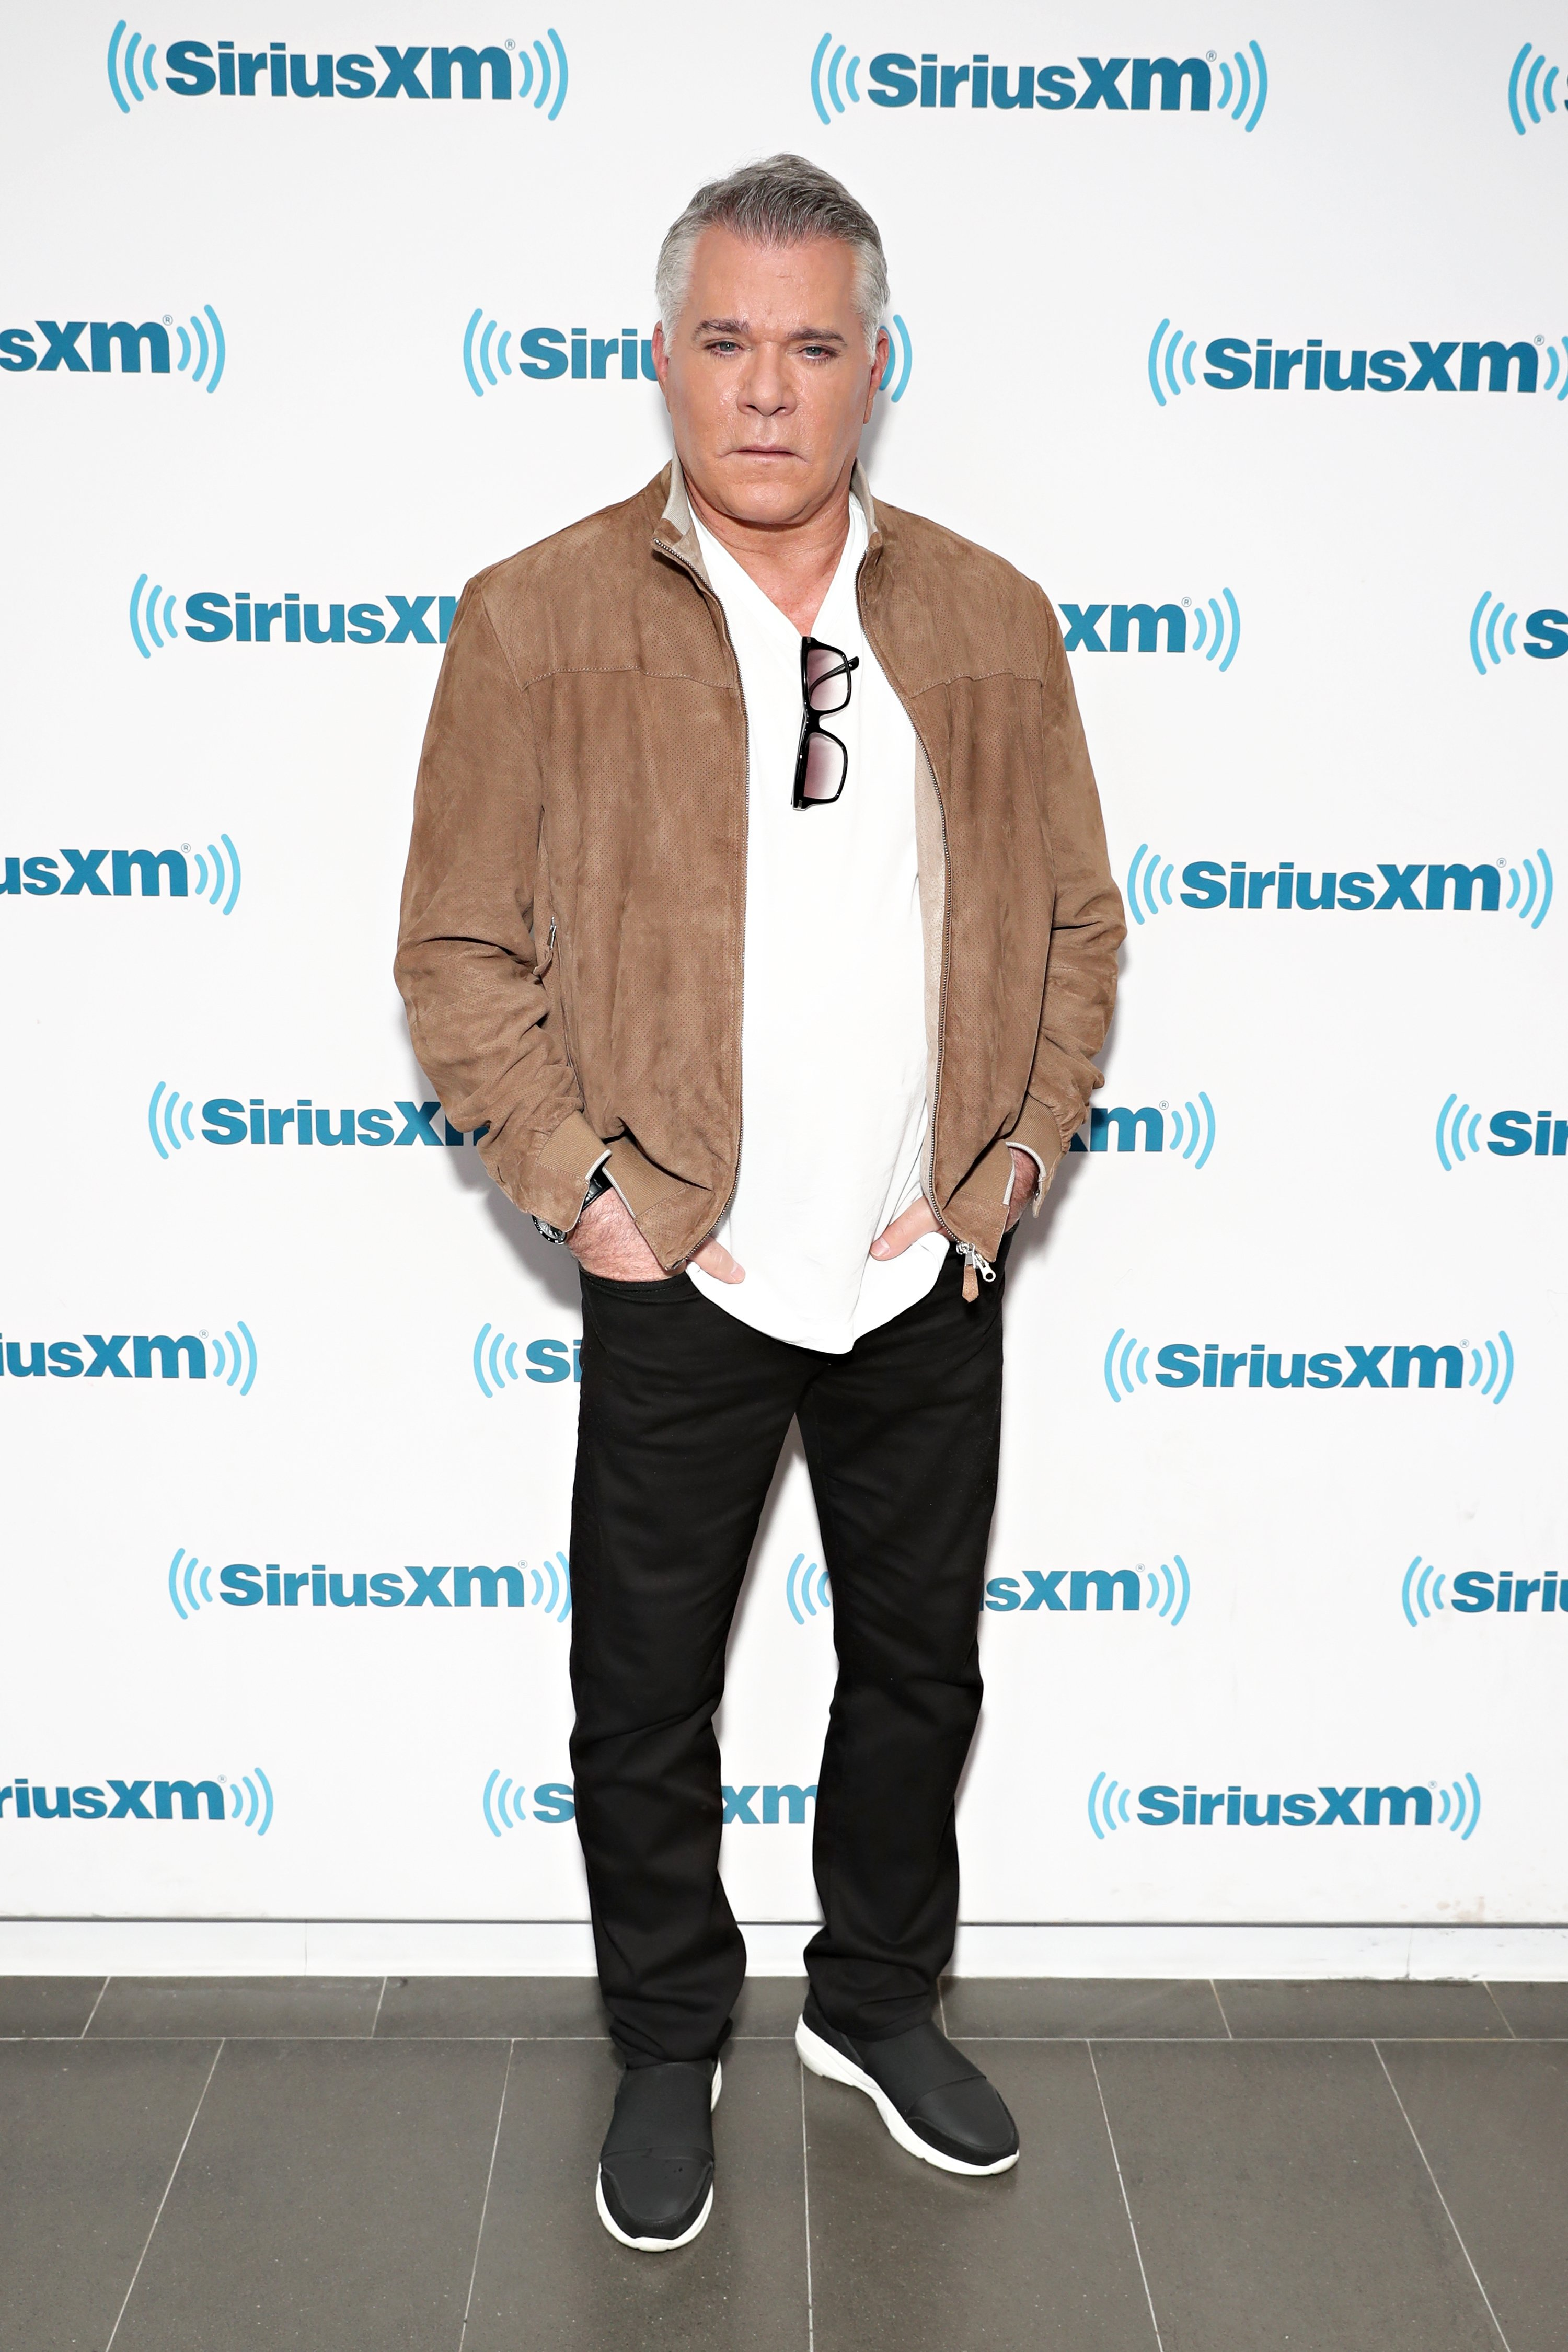 Ray Liotta pictured visiting the siriusxm studios in 2018 in New York | Photo: Getty Images